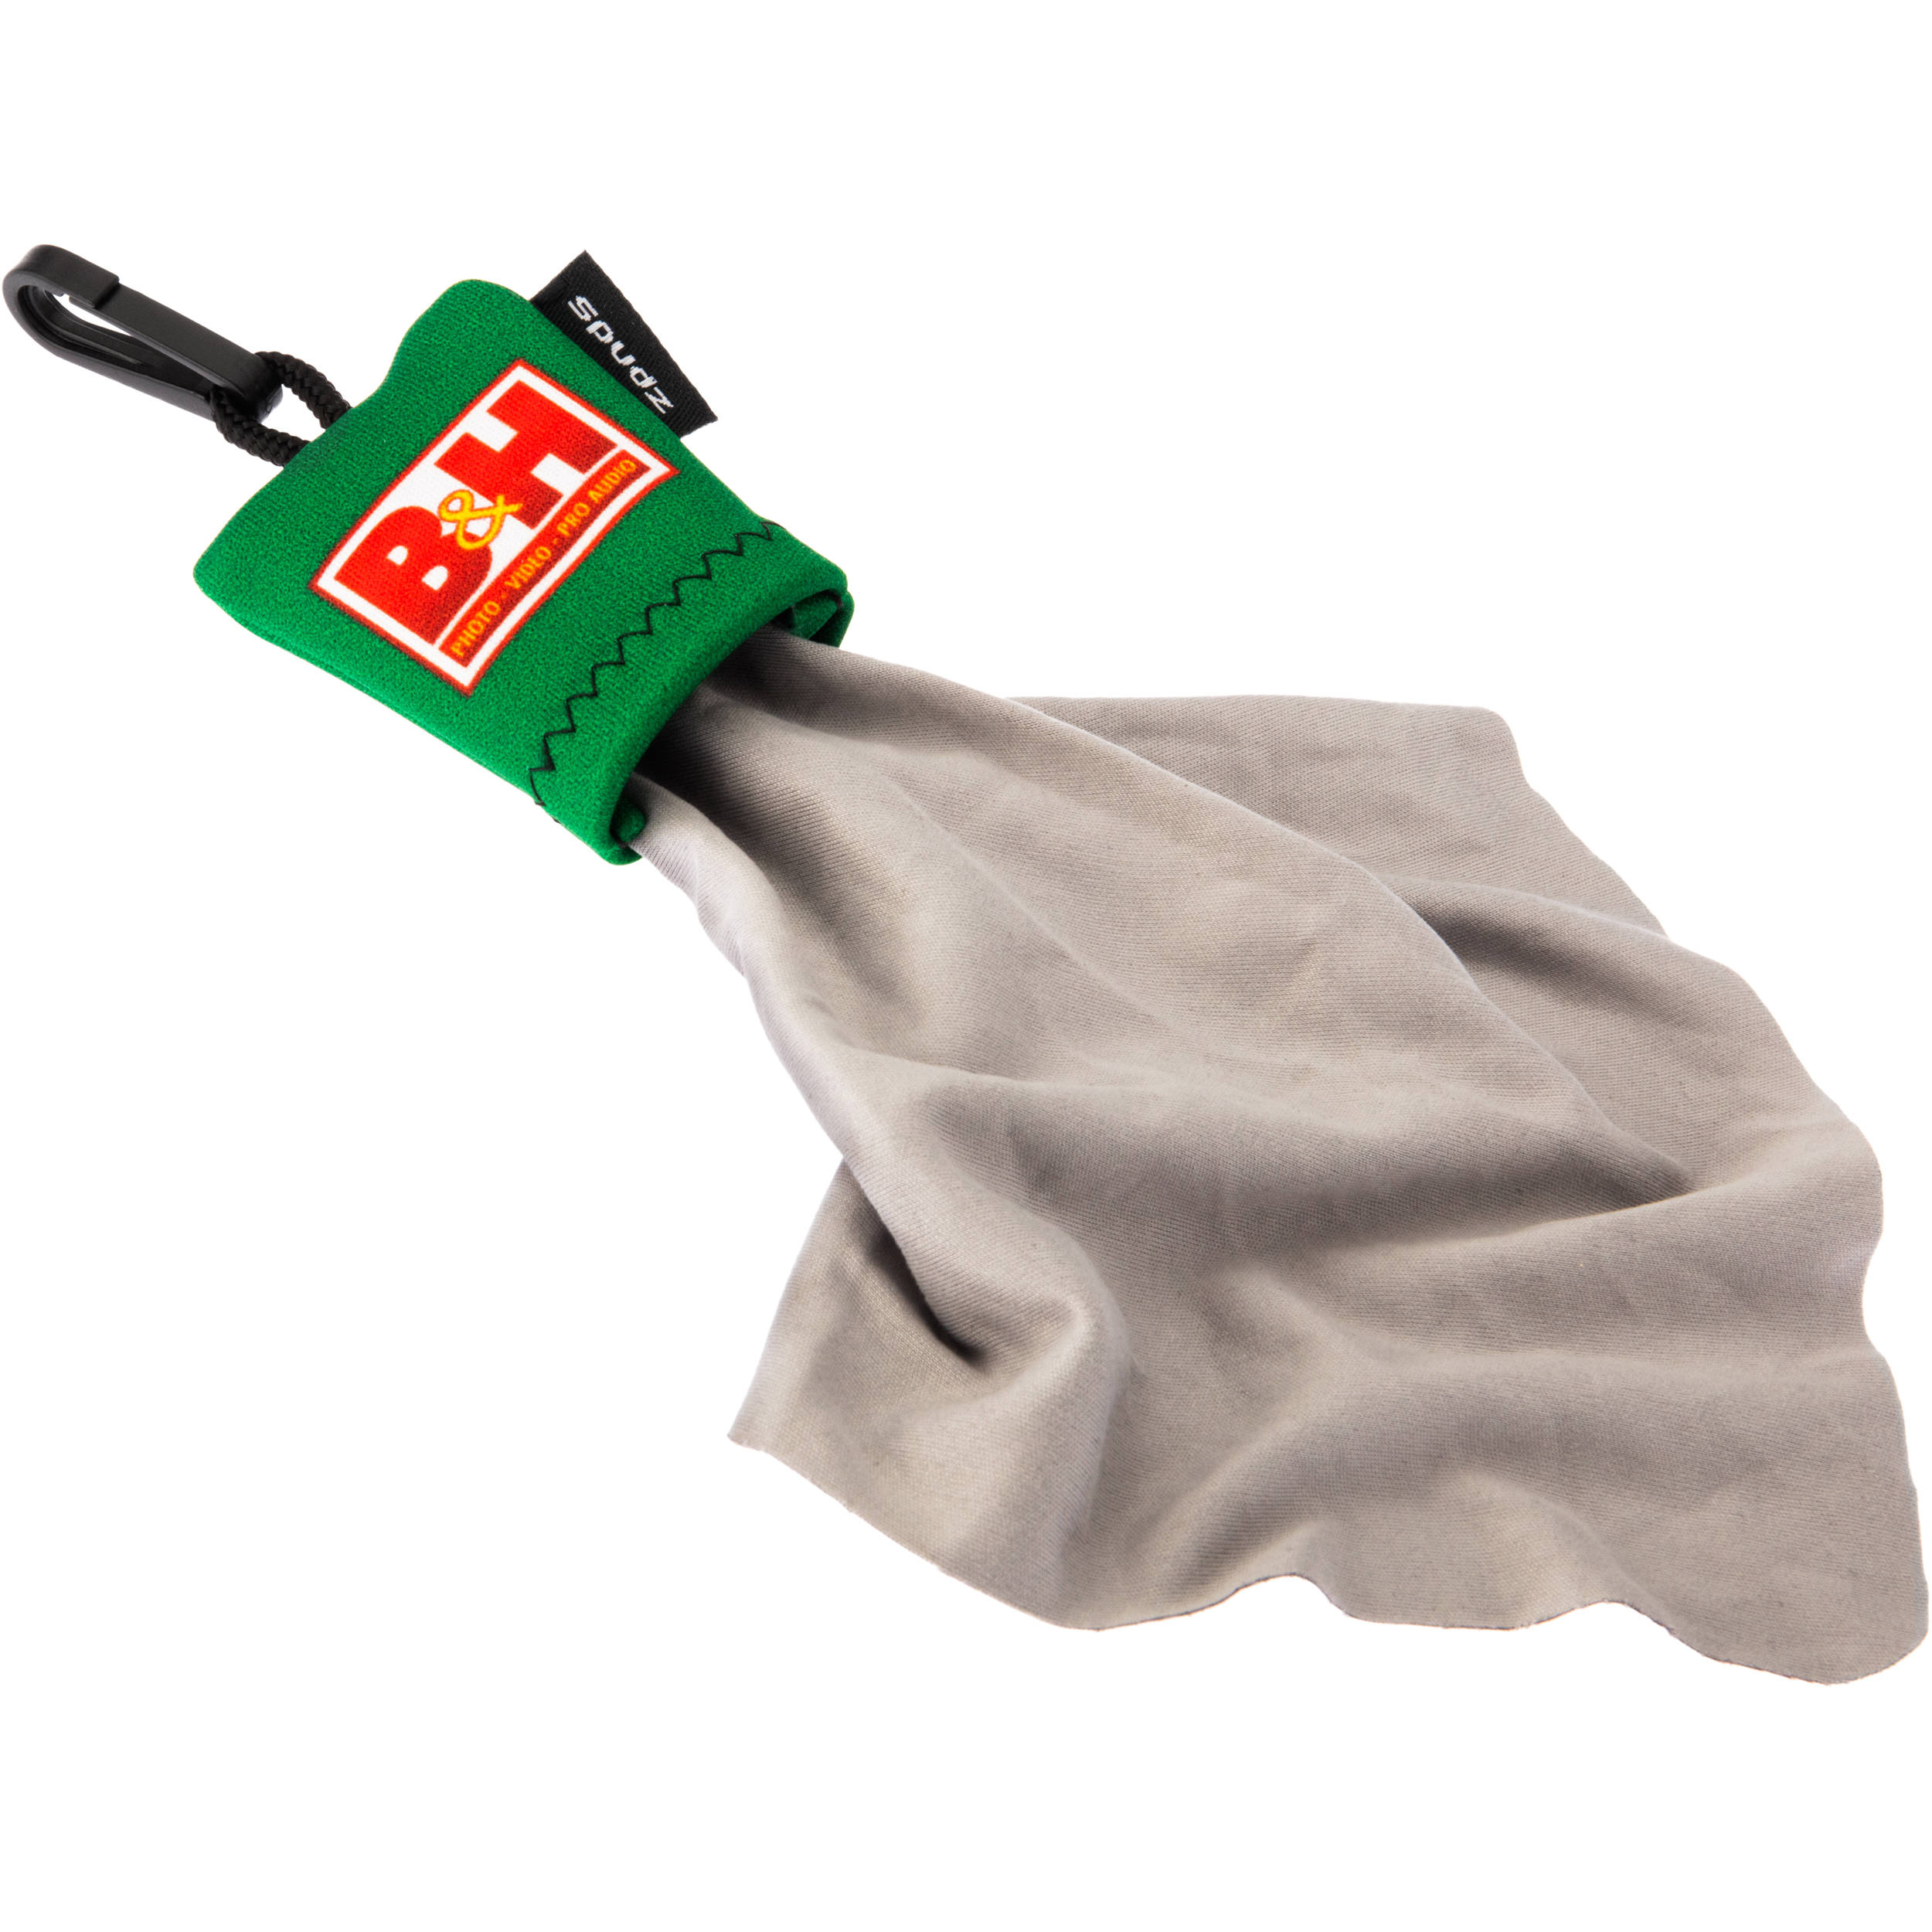 Spudz Microfiber Cleaning Cloth with B&H Logo.